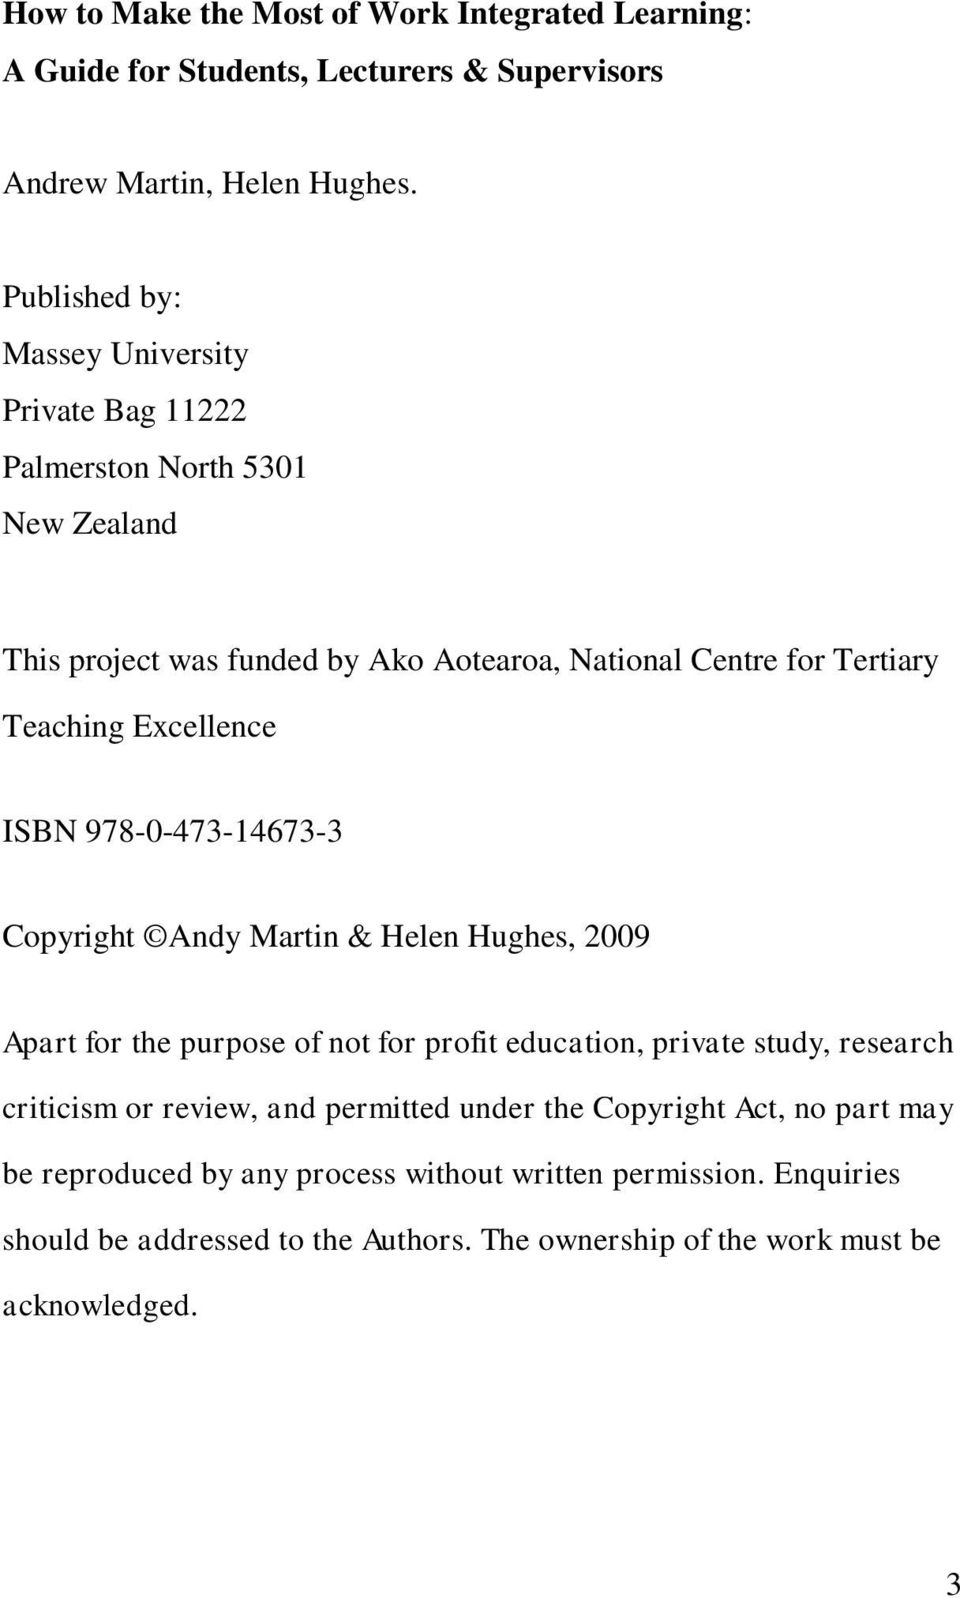 Excellence ISBN 978-0-473-14673-3 Copyright Andy Martin & Helen Hughes, 2009 Apart for the purpose of not for profit education, private study, research criticism or